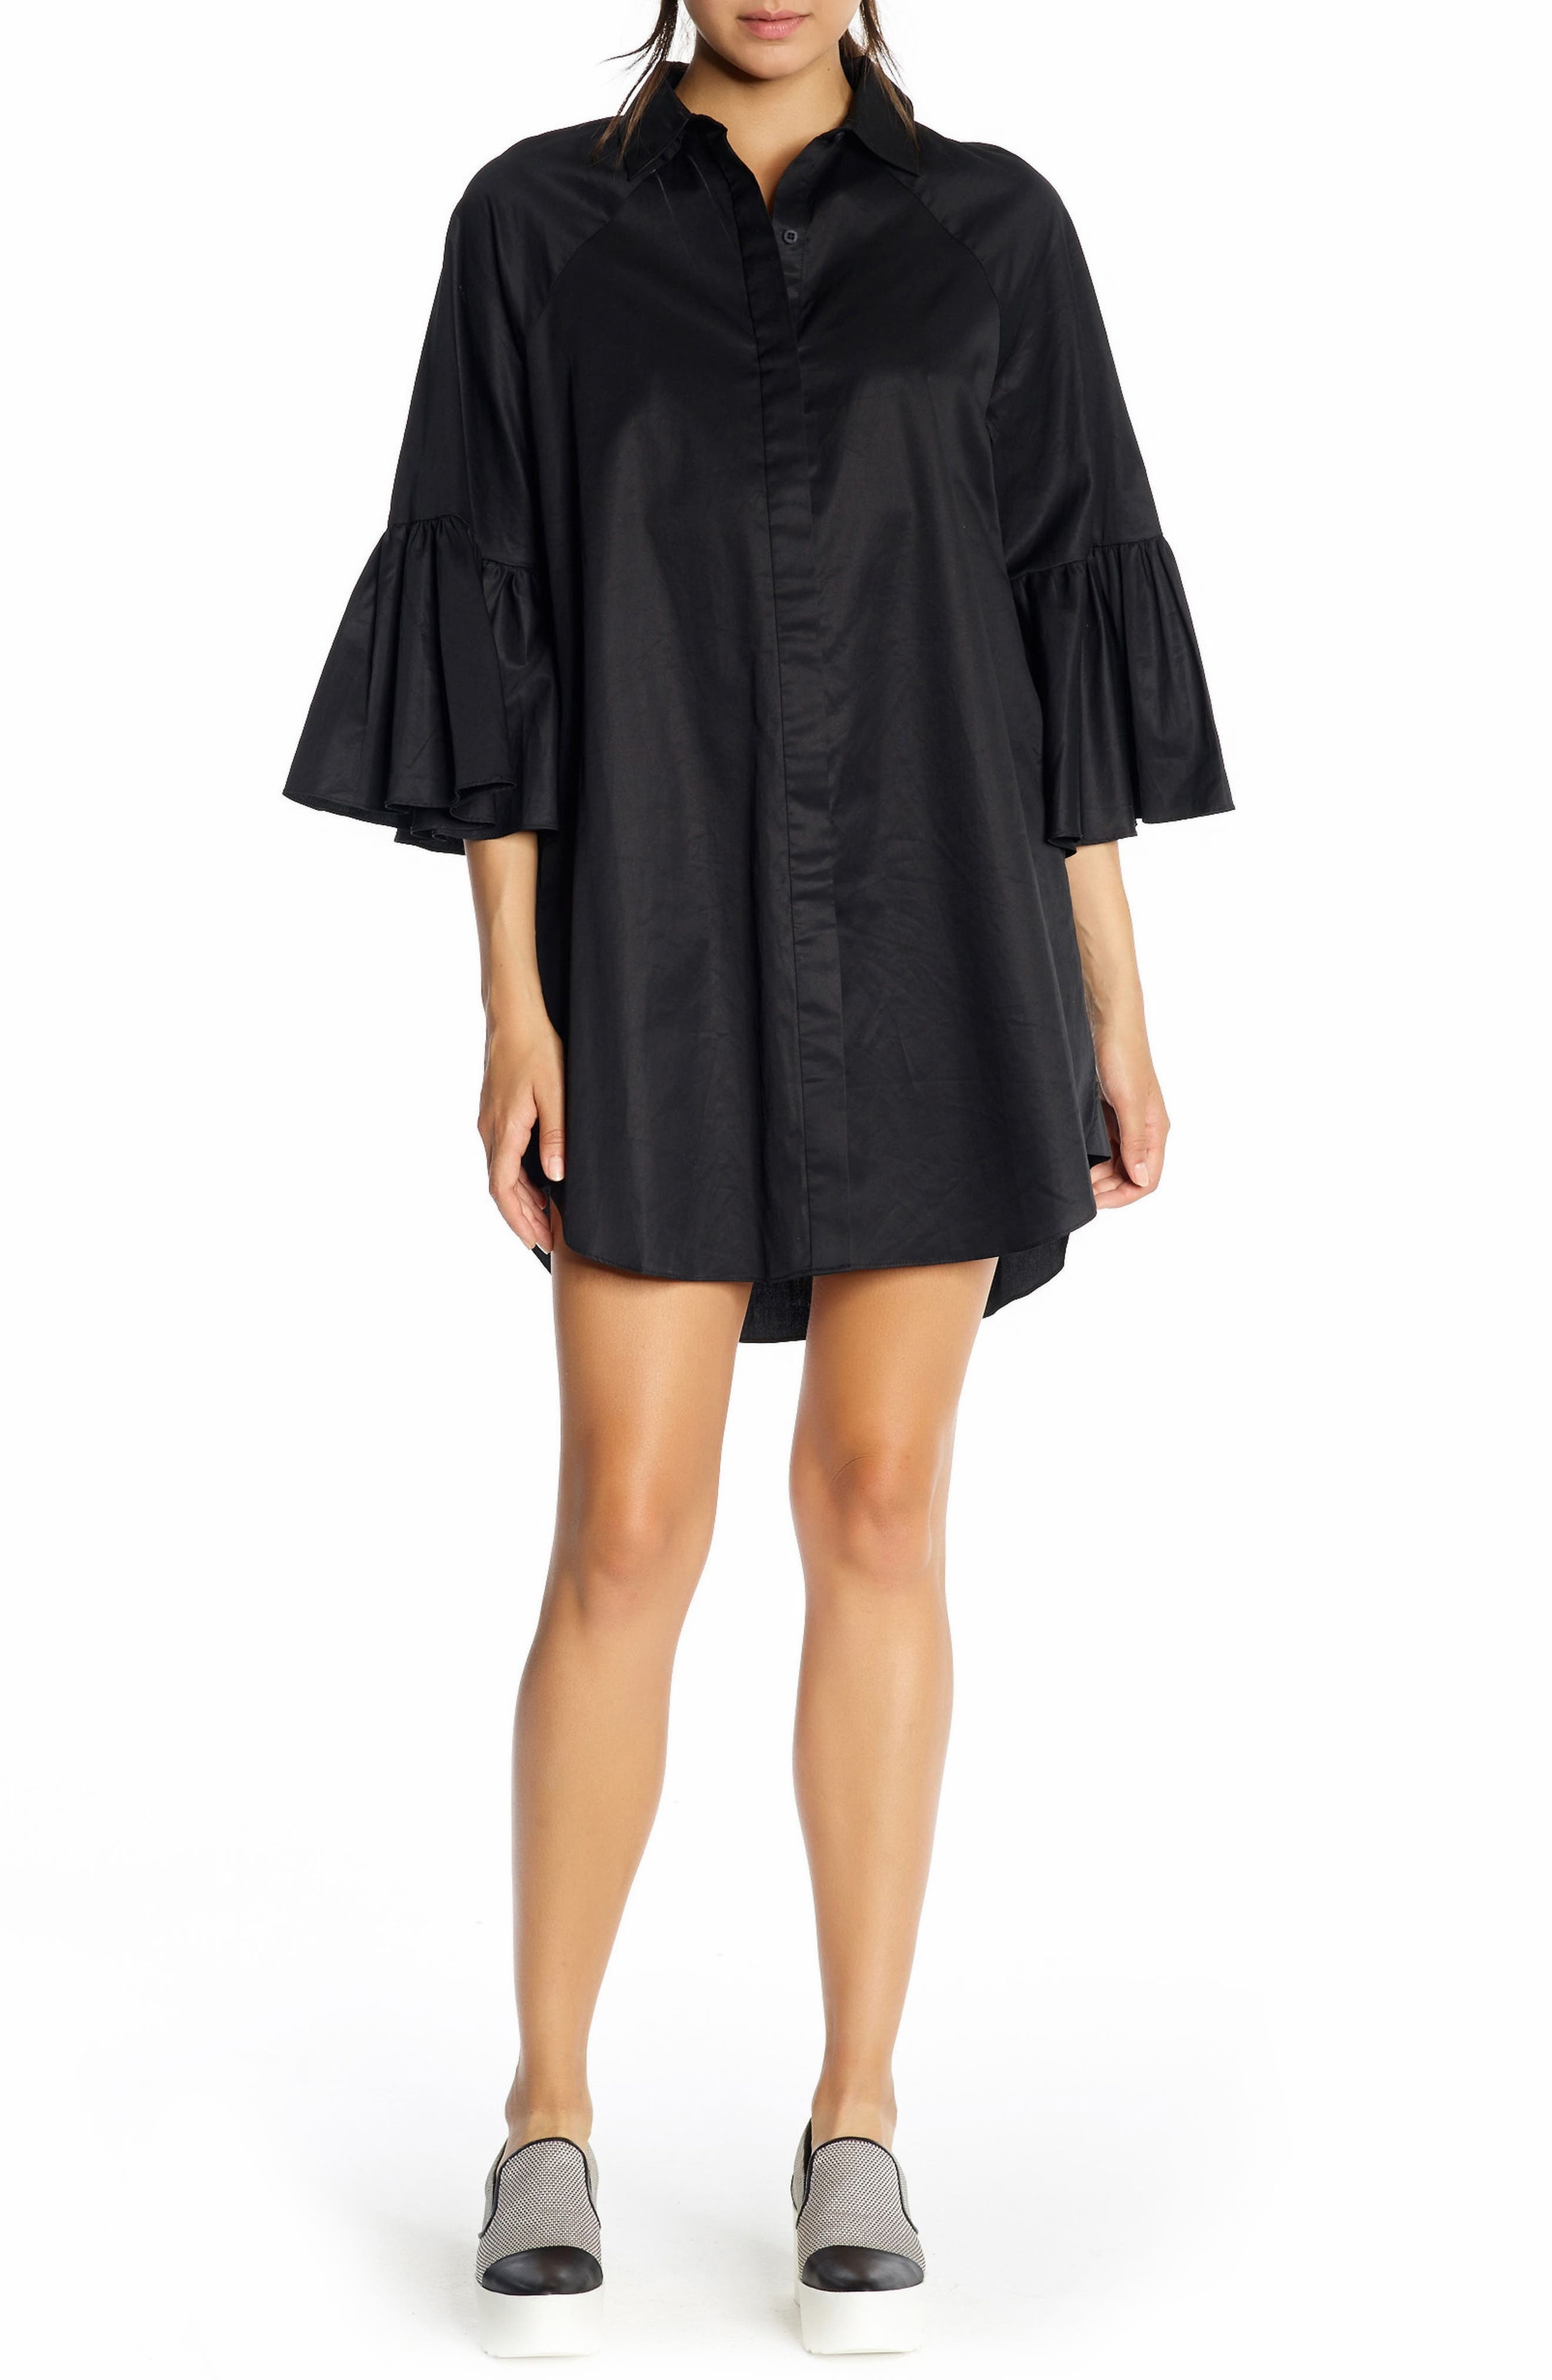 Alternate Image 1 Selected - KENDALL + KYLIE Bell Sleeve Cotton Shirtdress